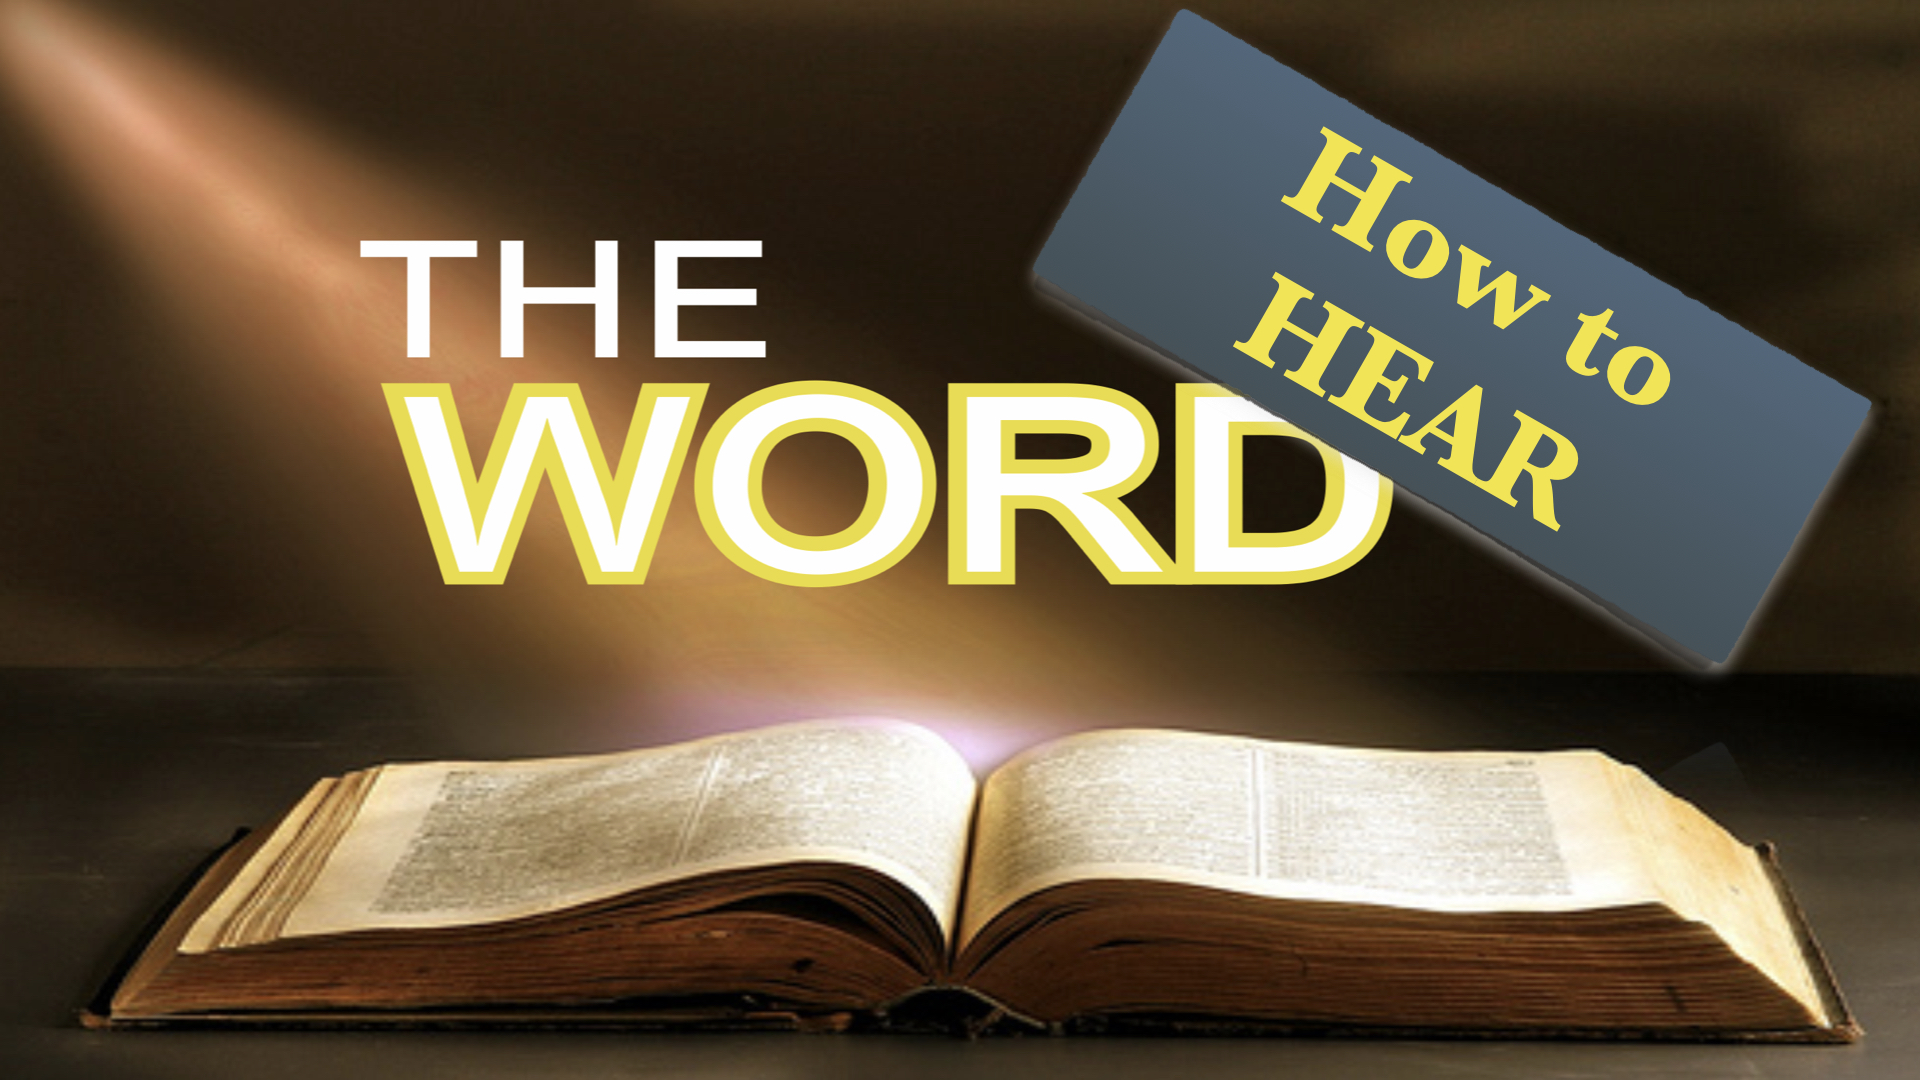 How to Hear The Word  7/8/2018 8:37:36 AM